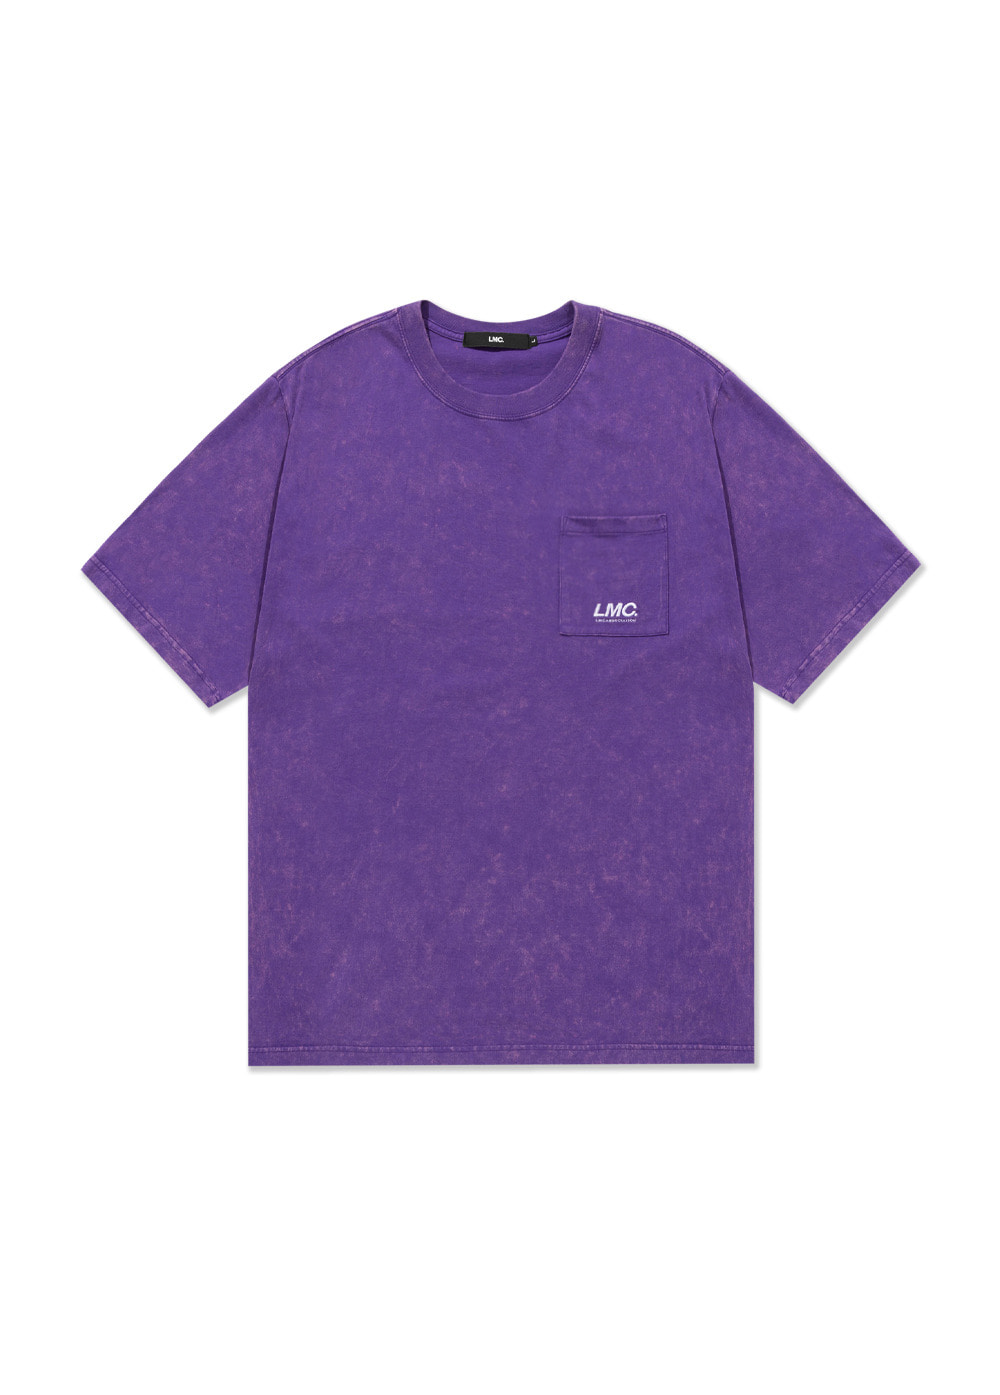 LMC ACID WASHED POCKET TEE purple